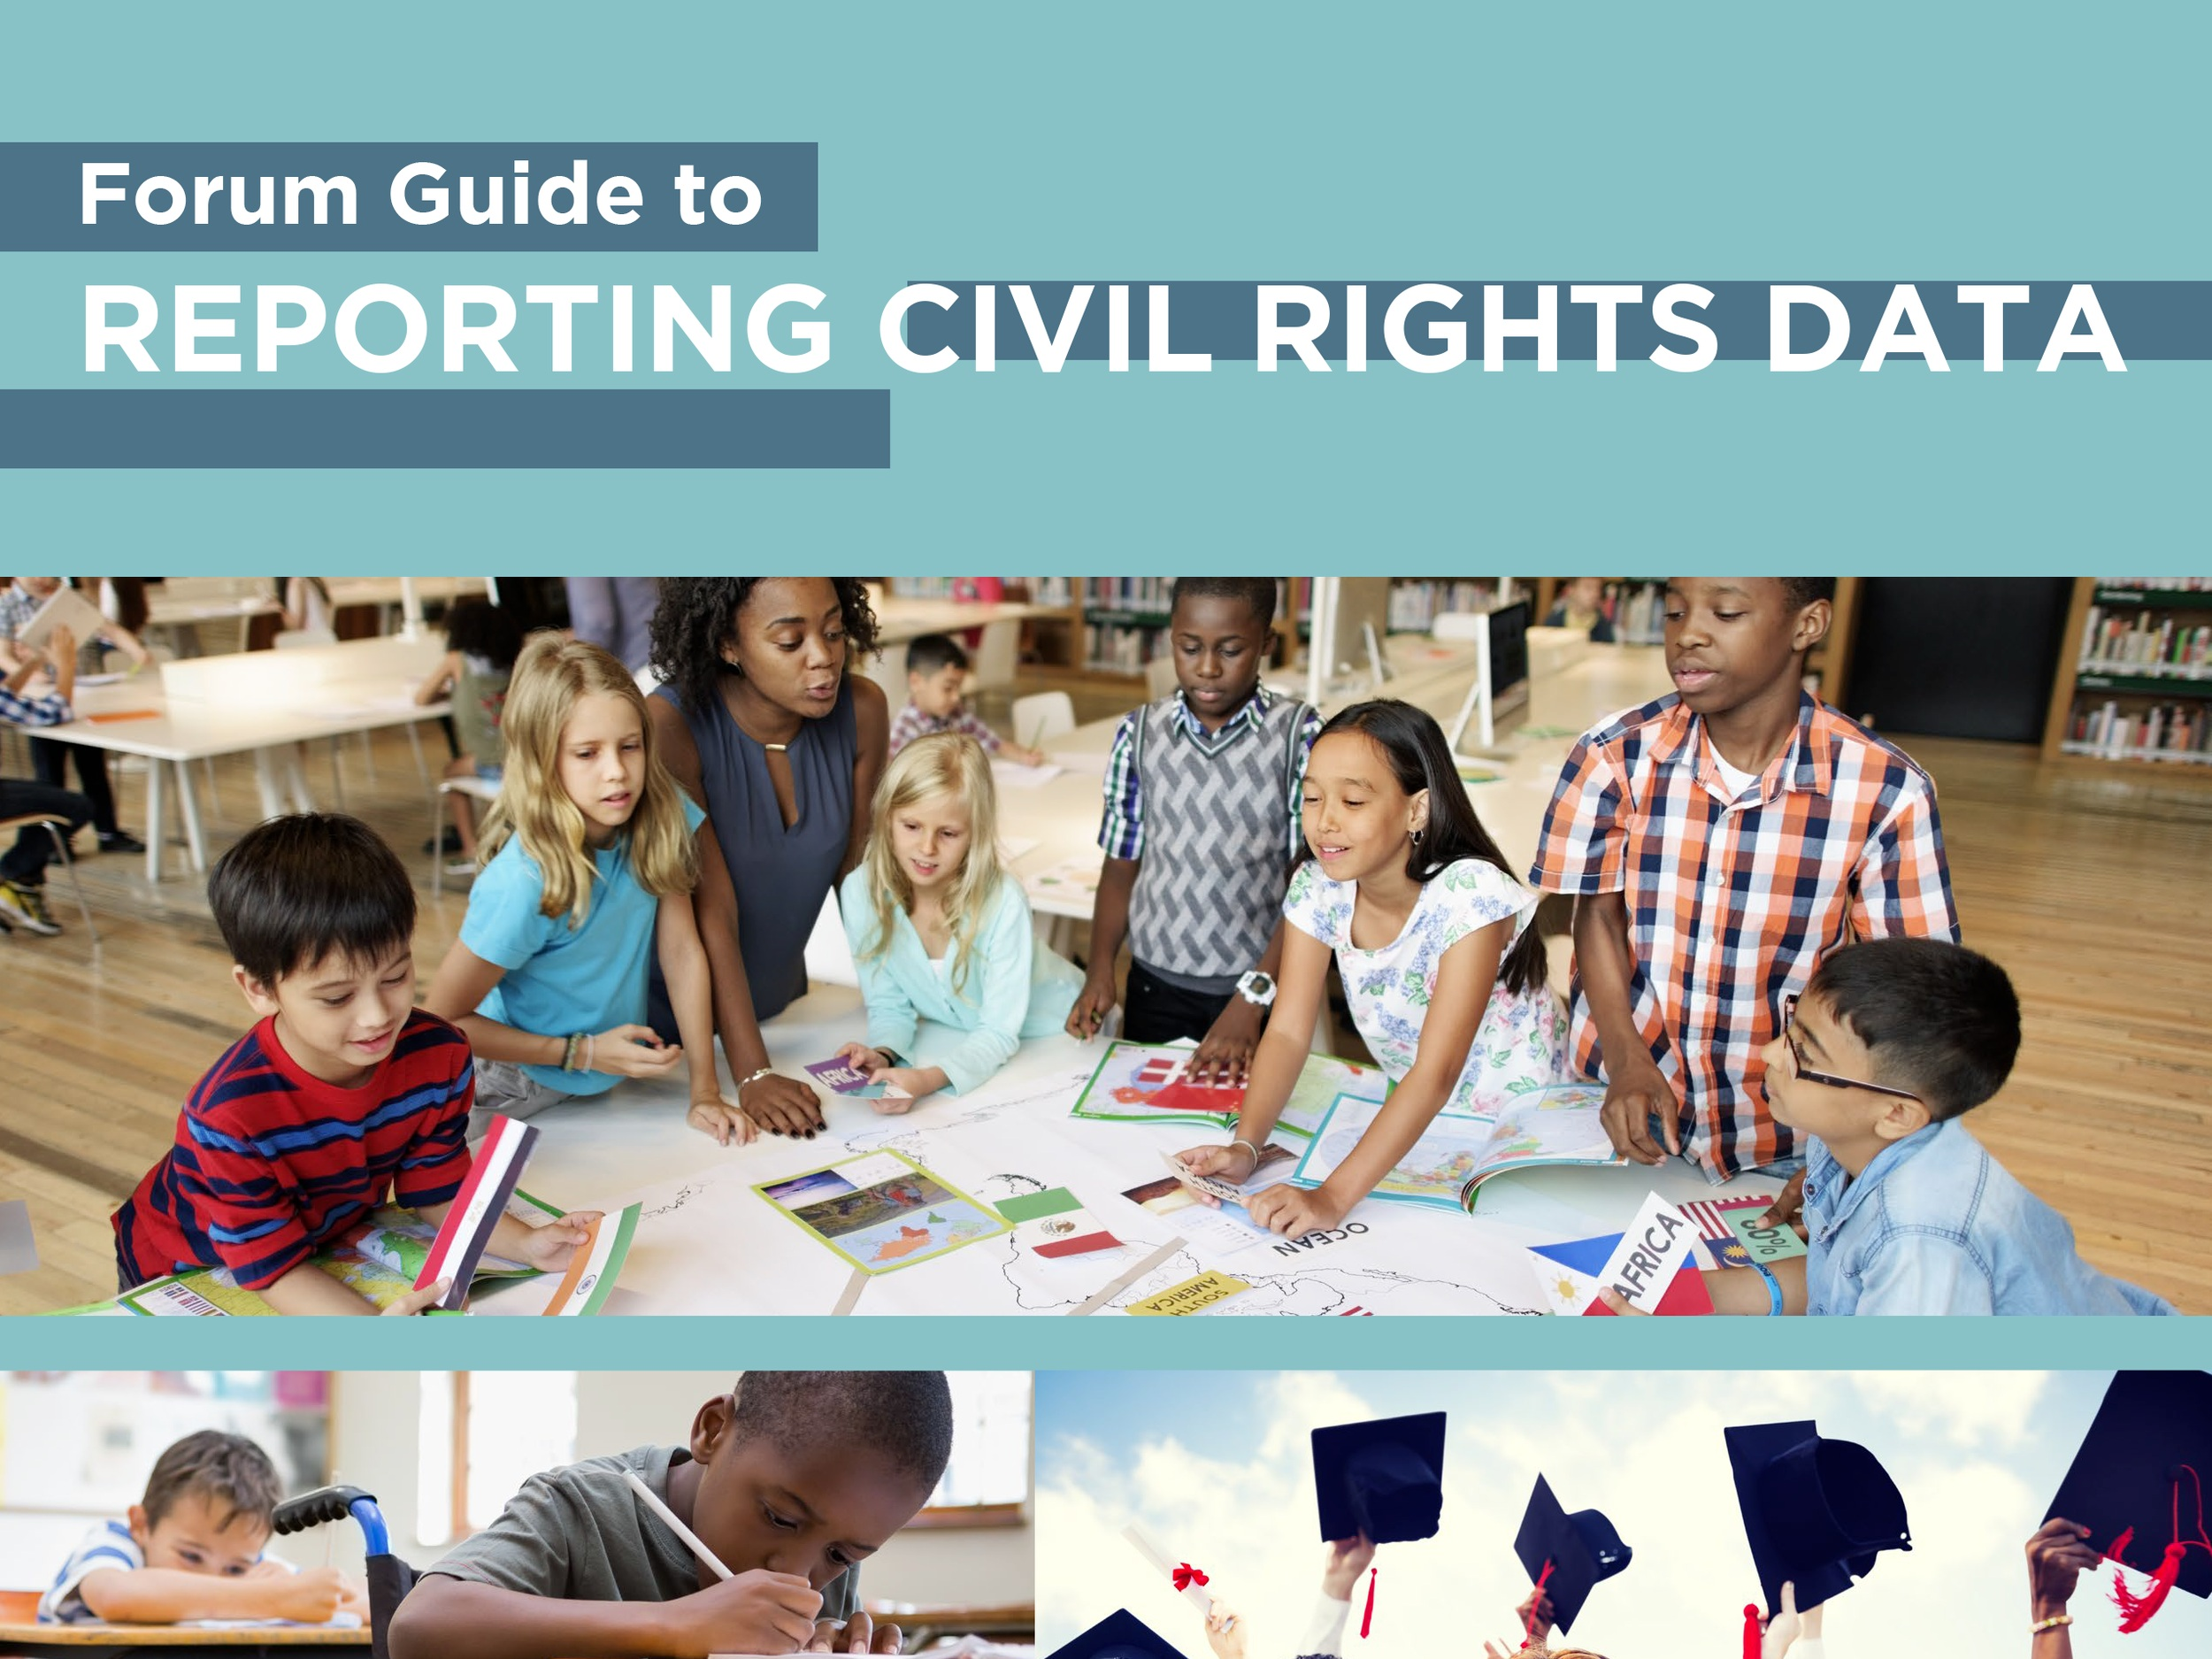 Forum Guide to Reporting Civil Rights Data